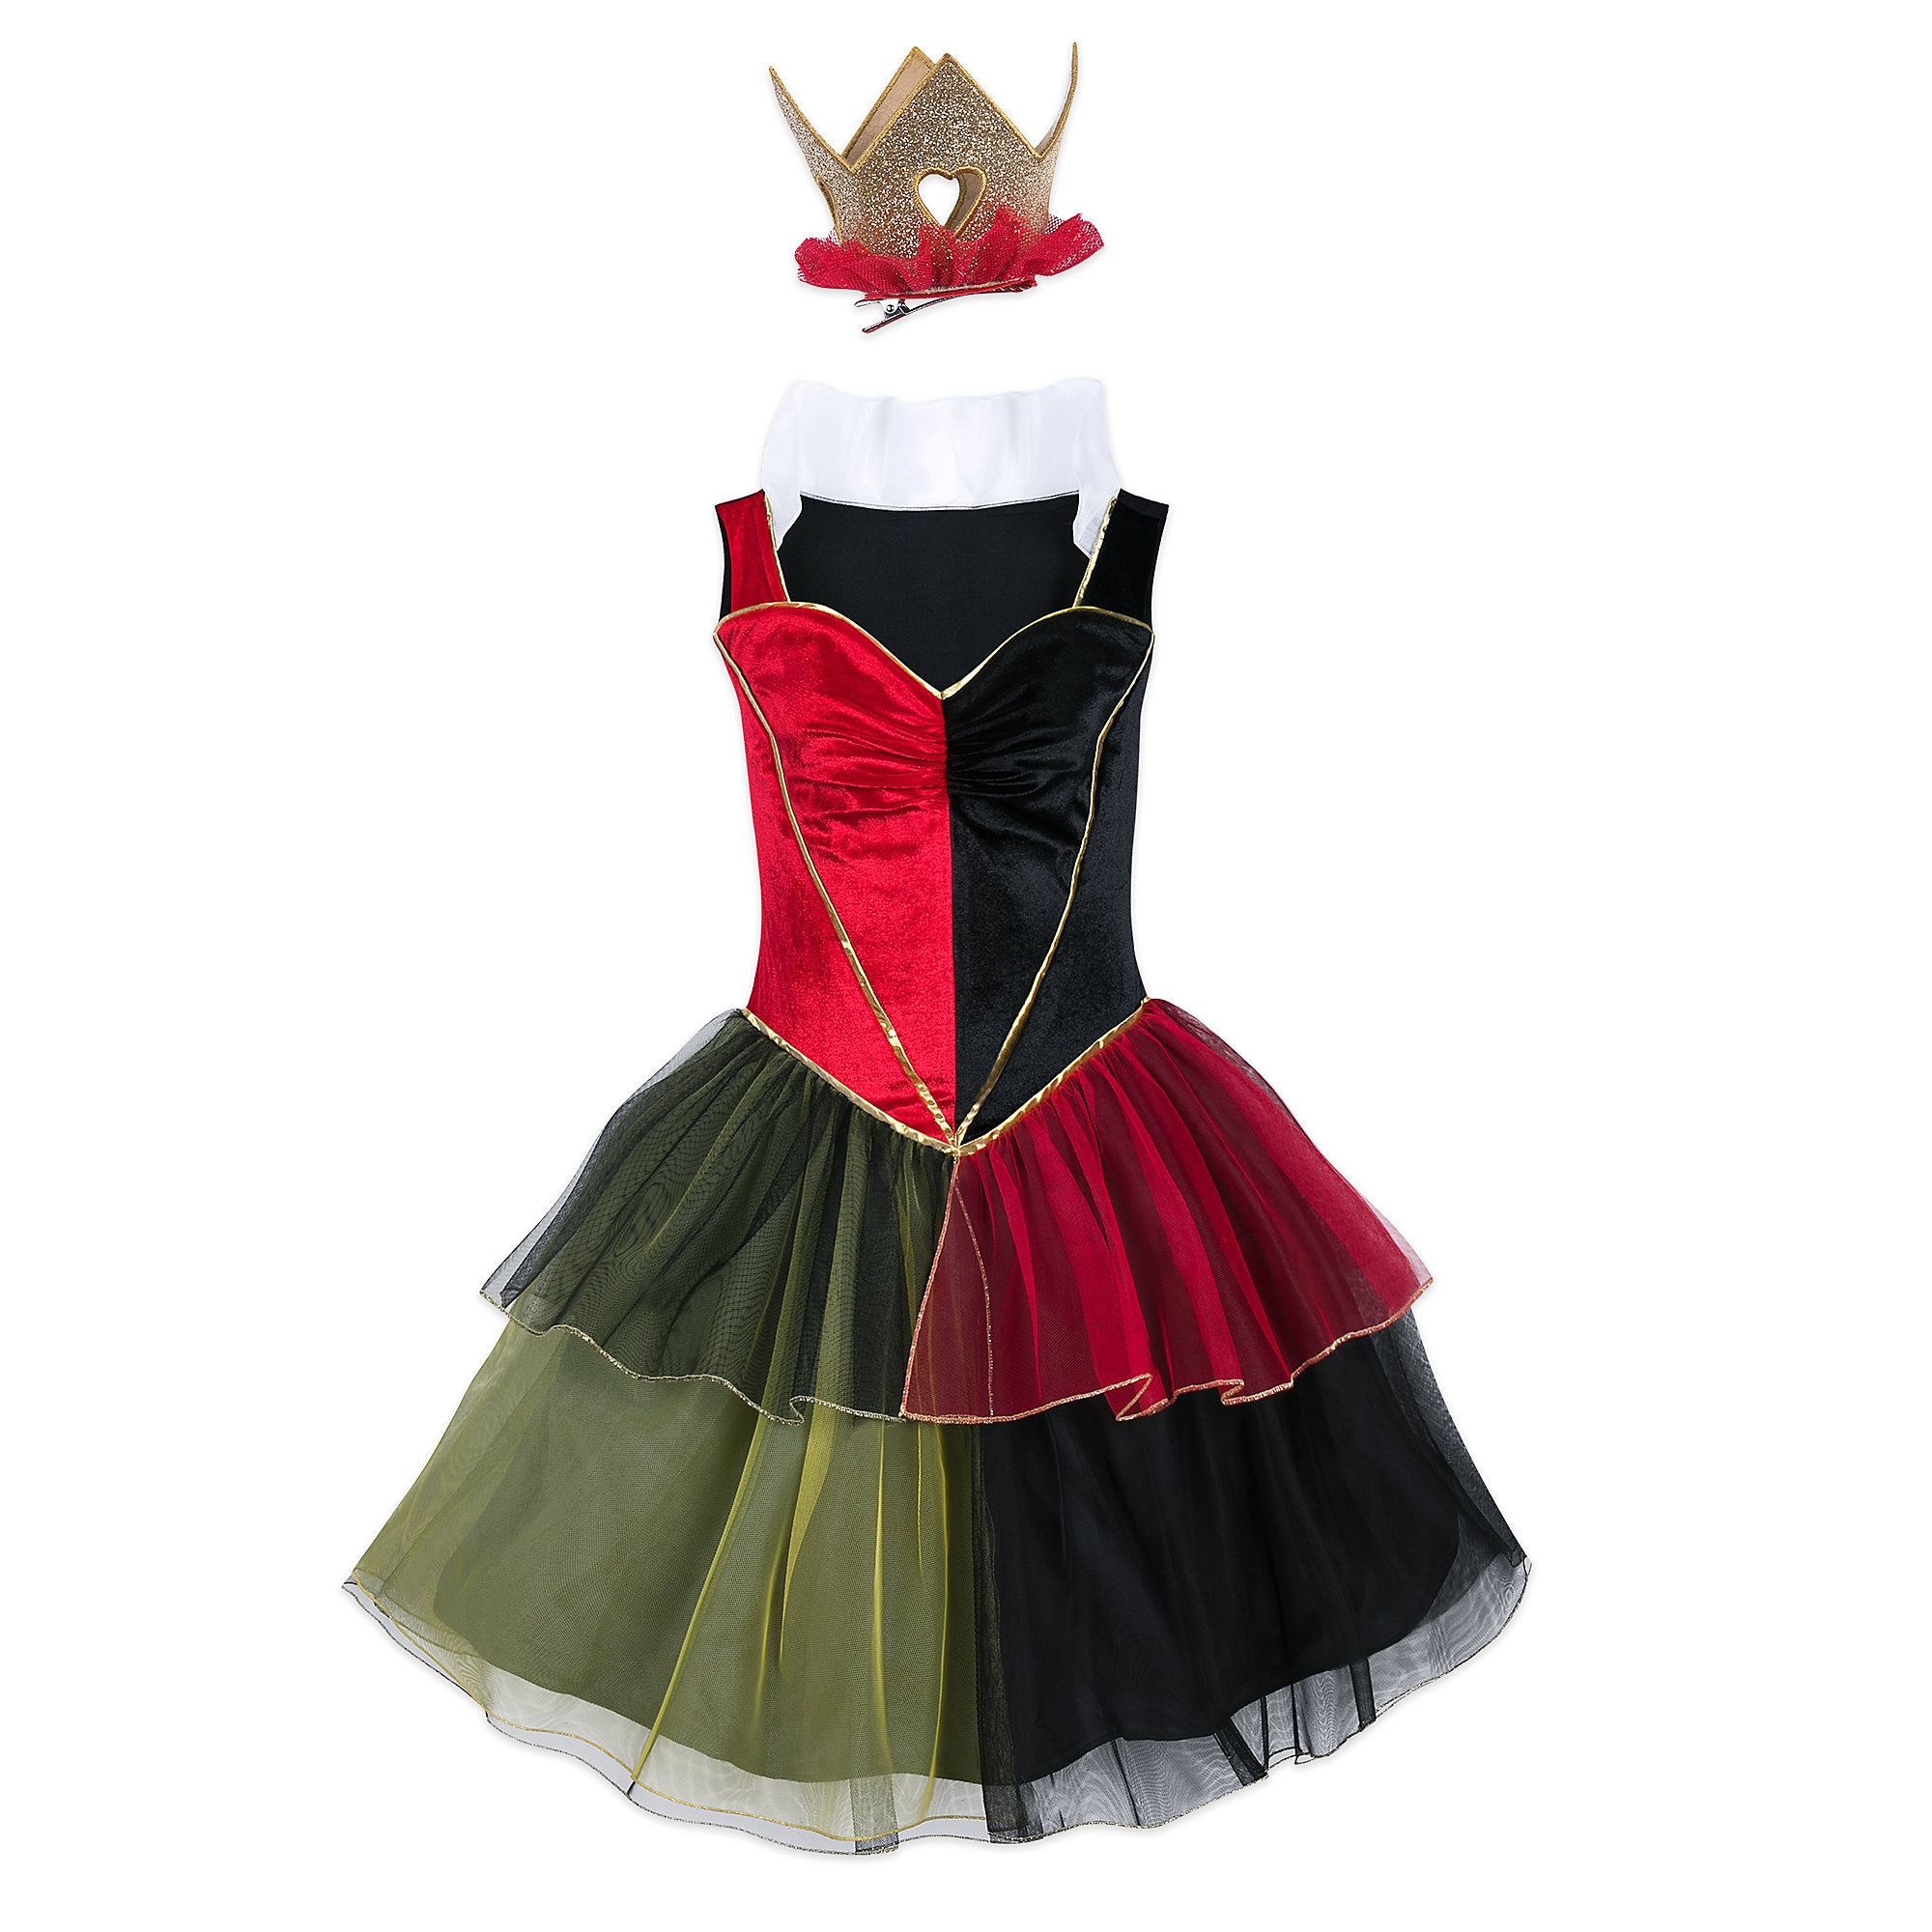 Queen of Hearts Costume with Tutu for Adults - Alice in